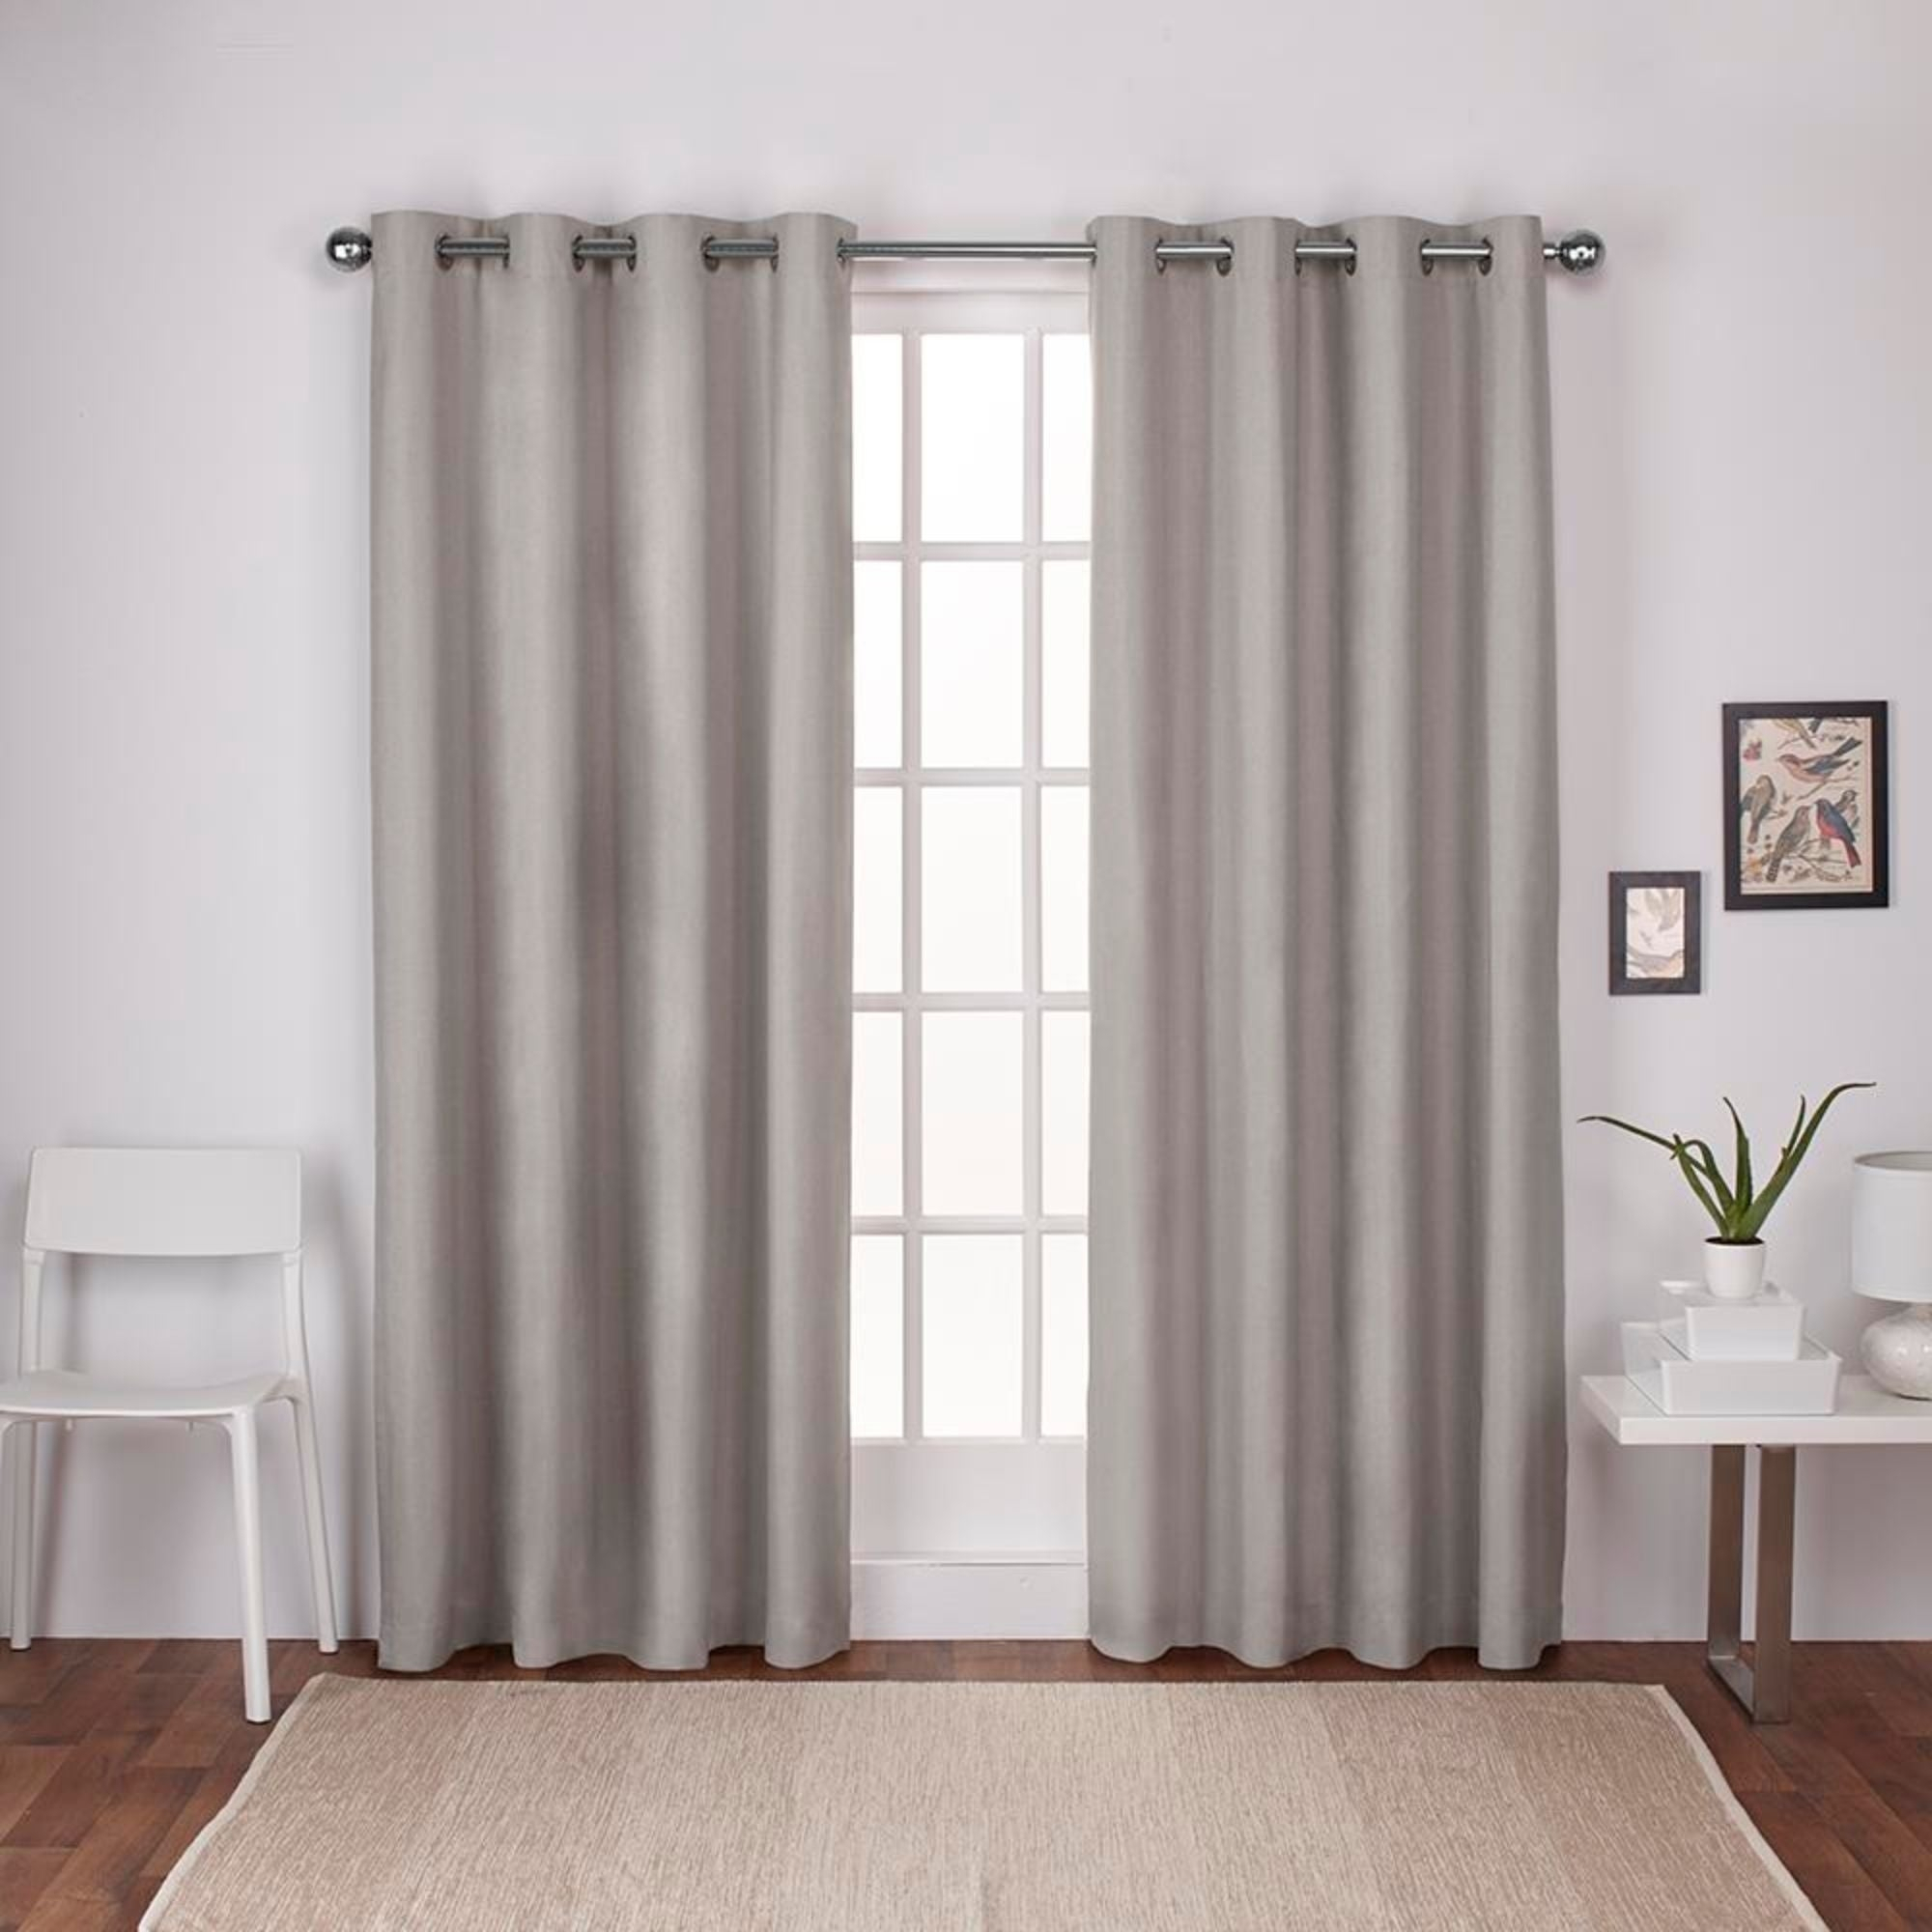 Shop Strick & Bolton Lewitt Thermal Textured Linen Grommet With Regard To Thermal Textured Linen Grommet Top Curtain Panel Pairs (View 3 of 30)